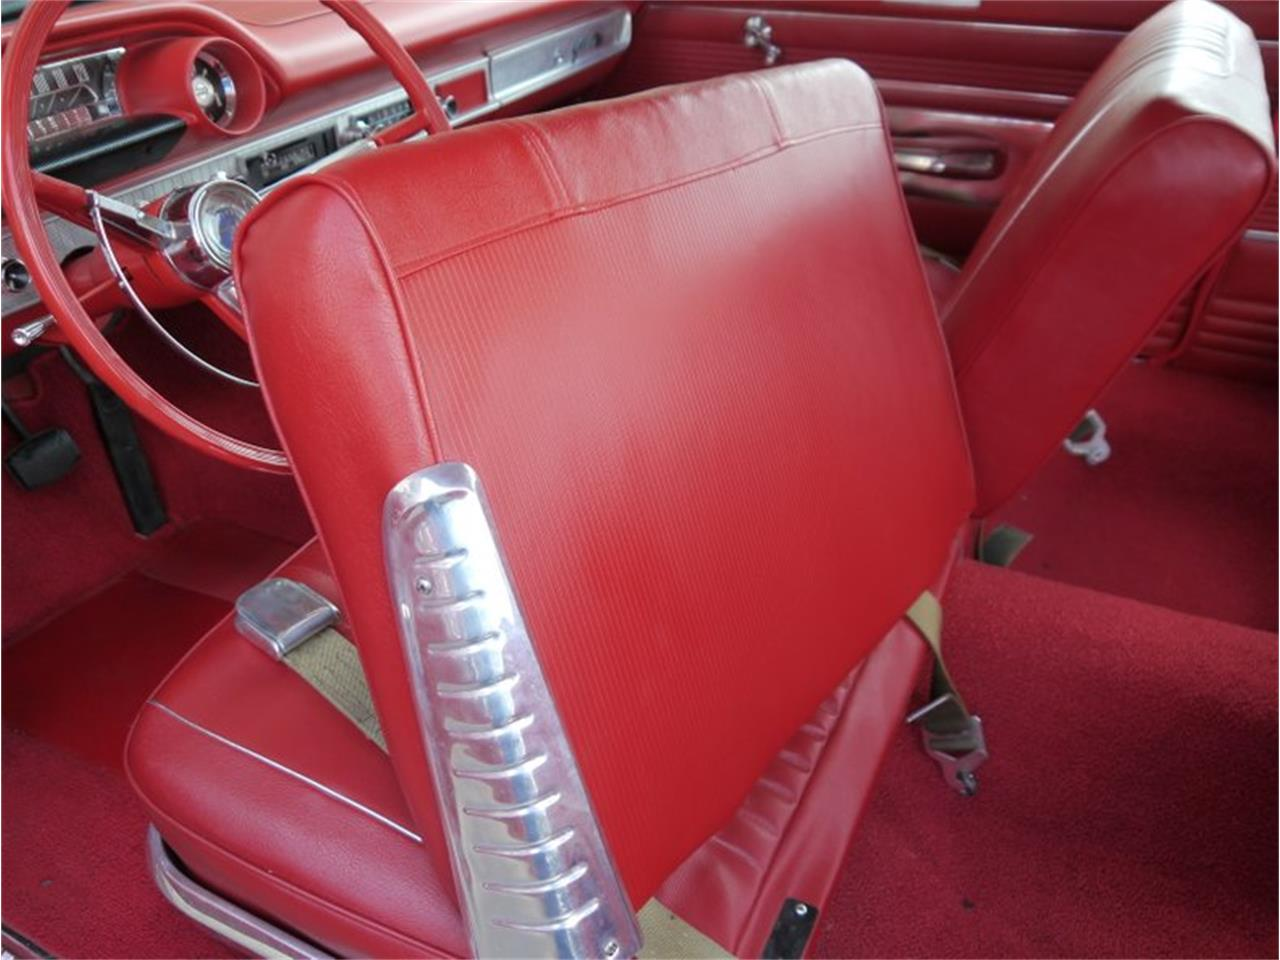 1963 Ford Galaxie 500 for sale in Alsip, IL – photo 77